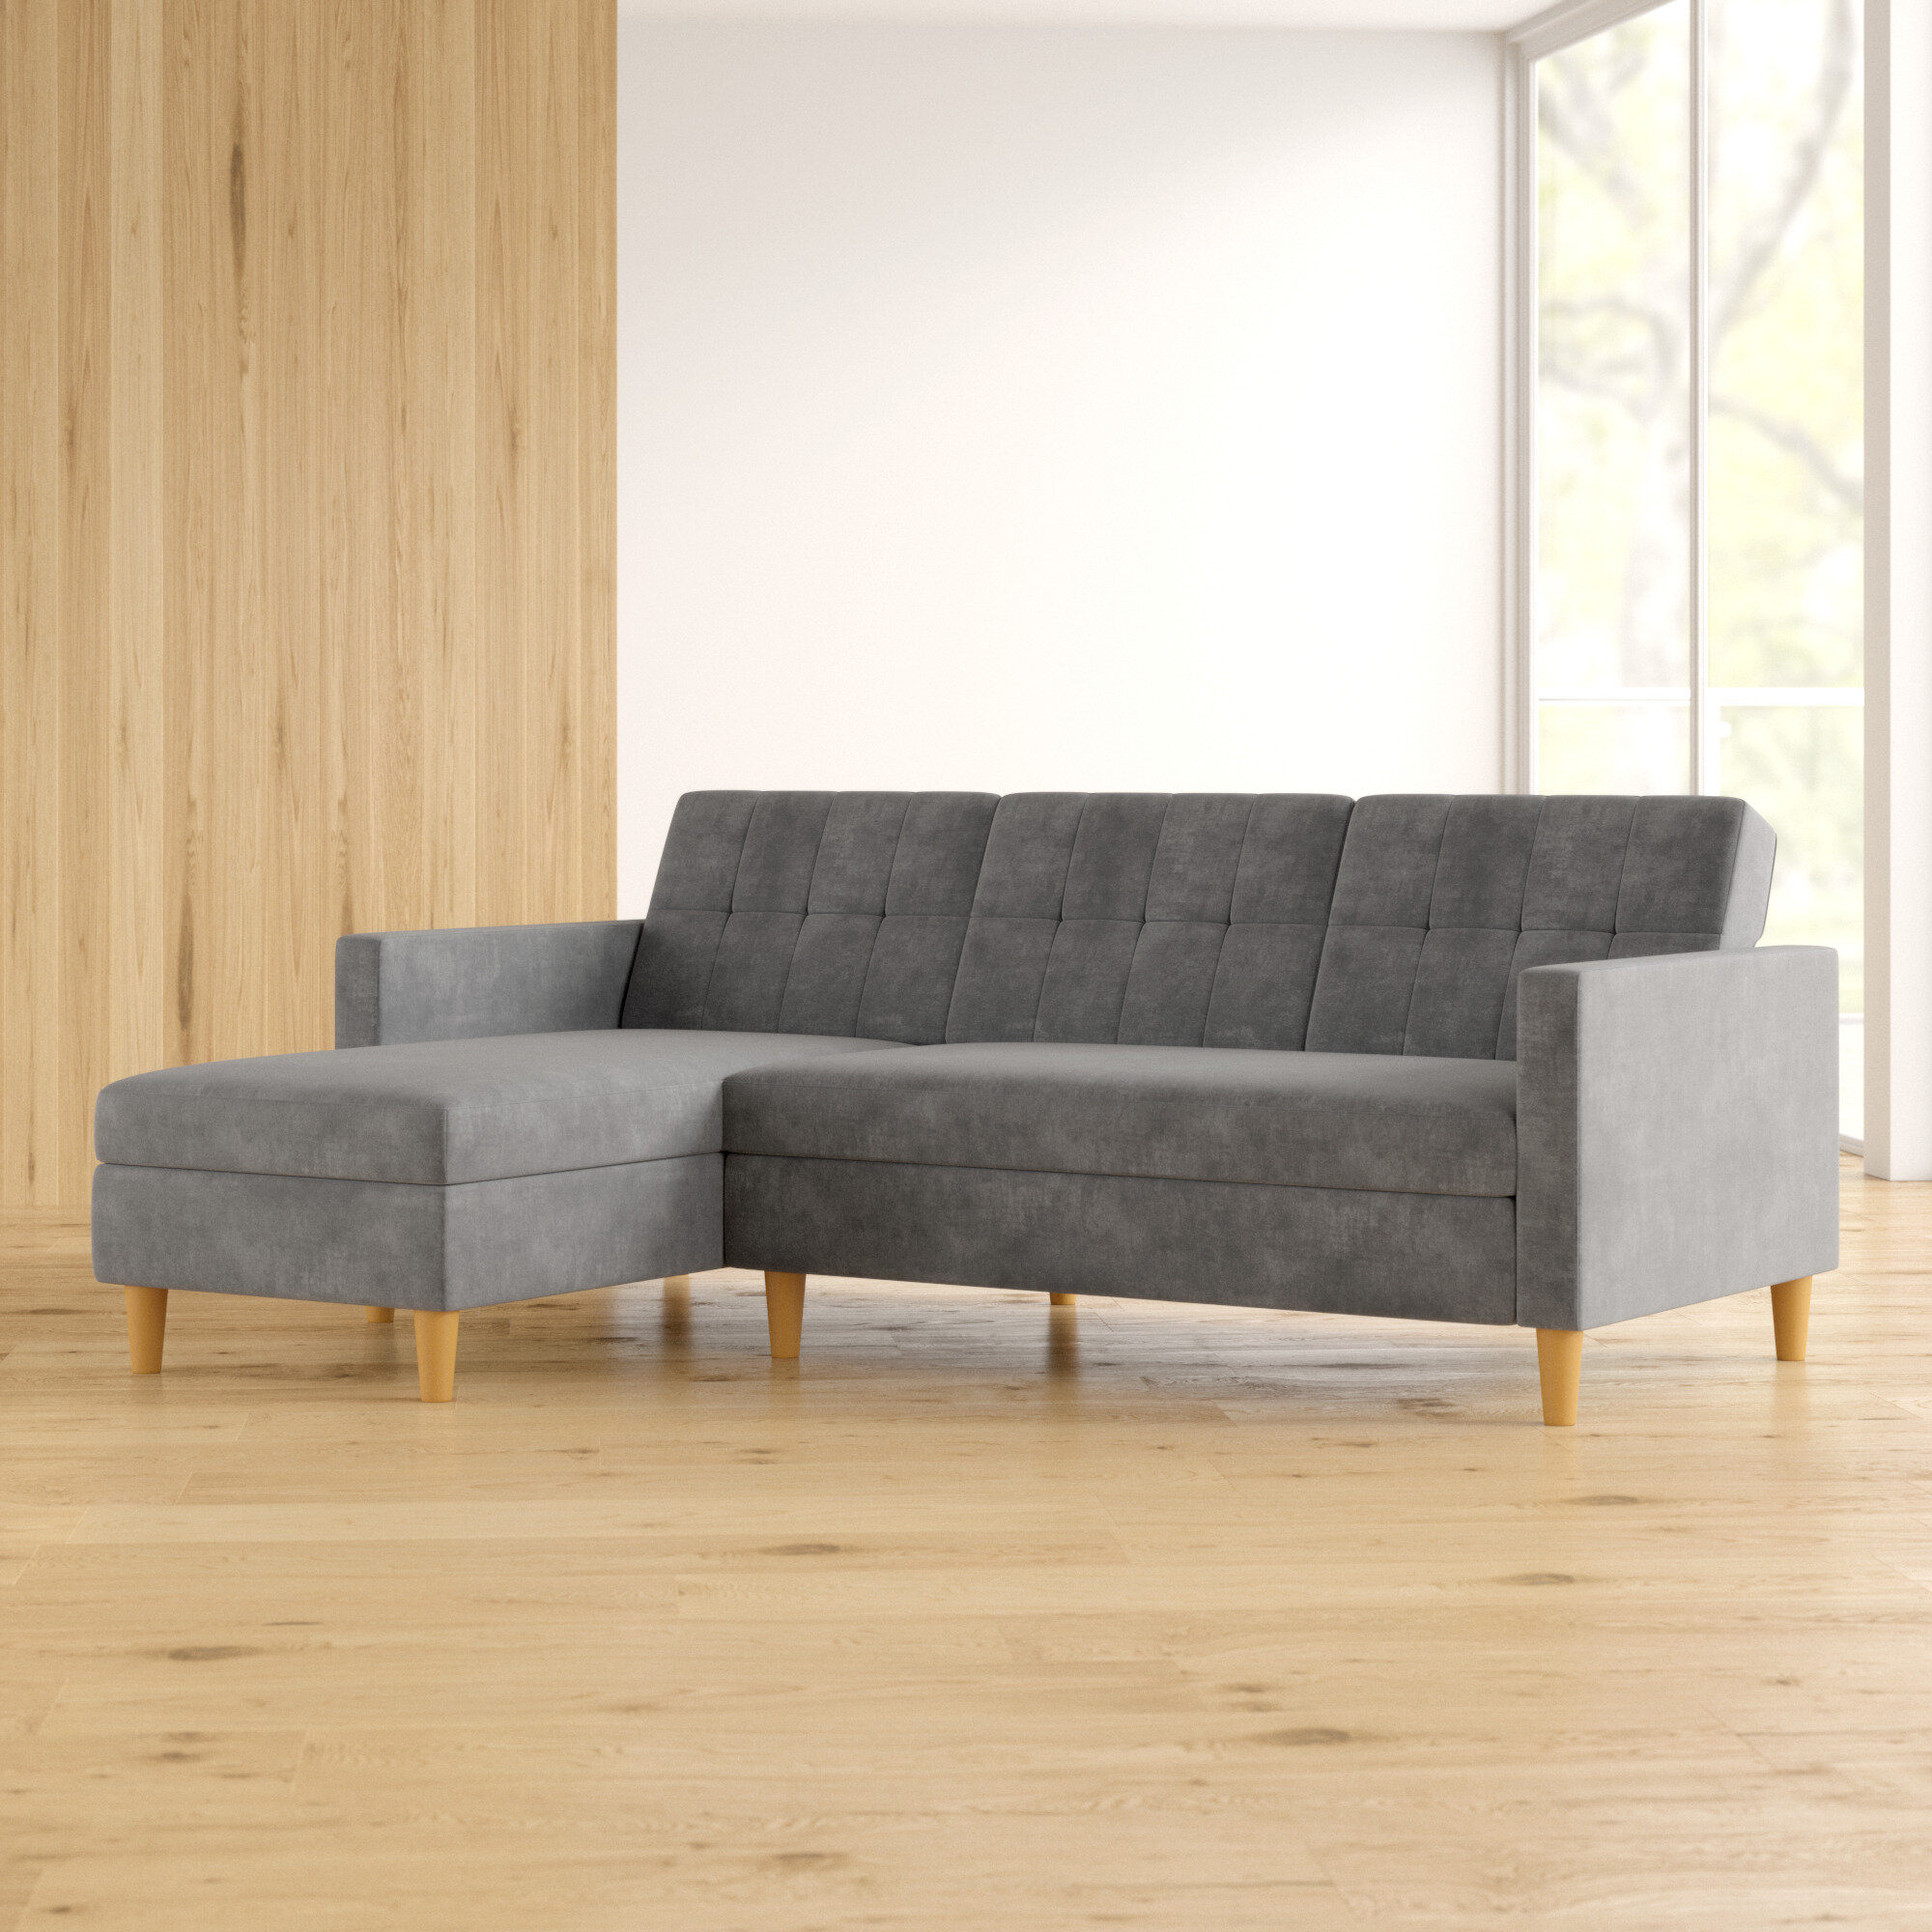 Sectional Sofa with Reversible Ottoman,L Shaped Sleeper Sofa Couch in Gray Fabric for Living Room